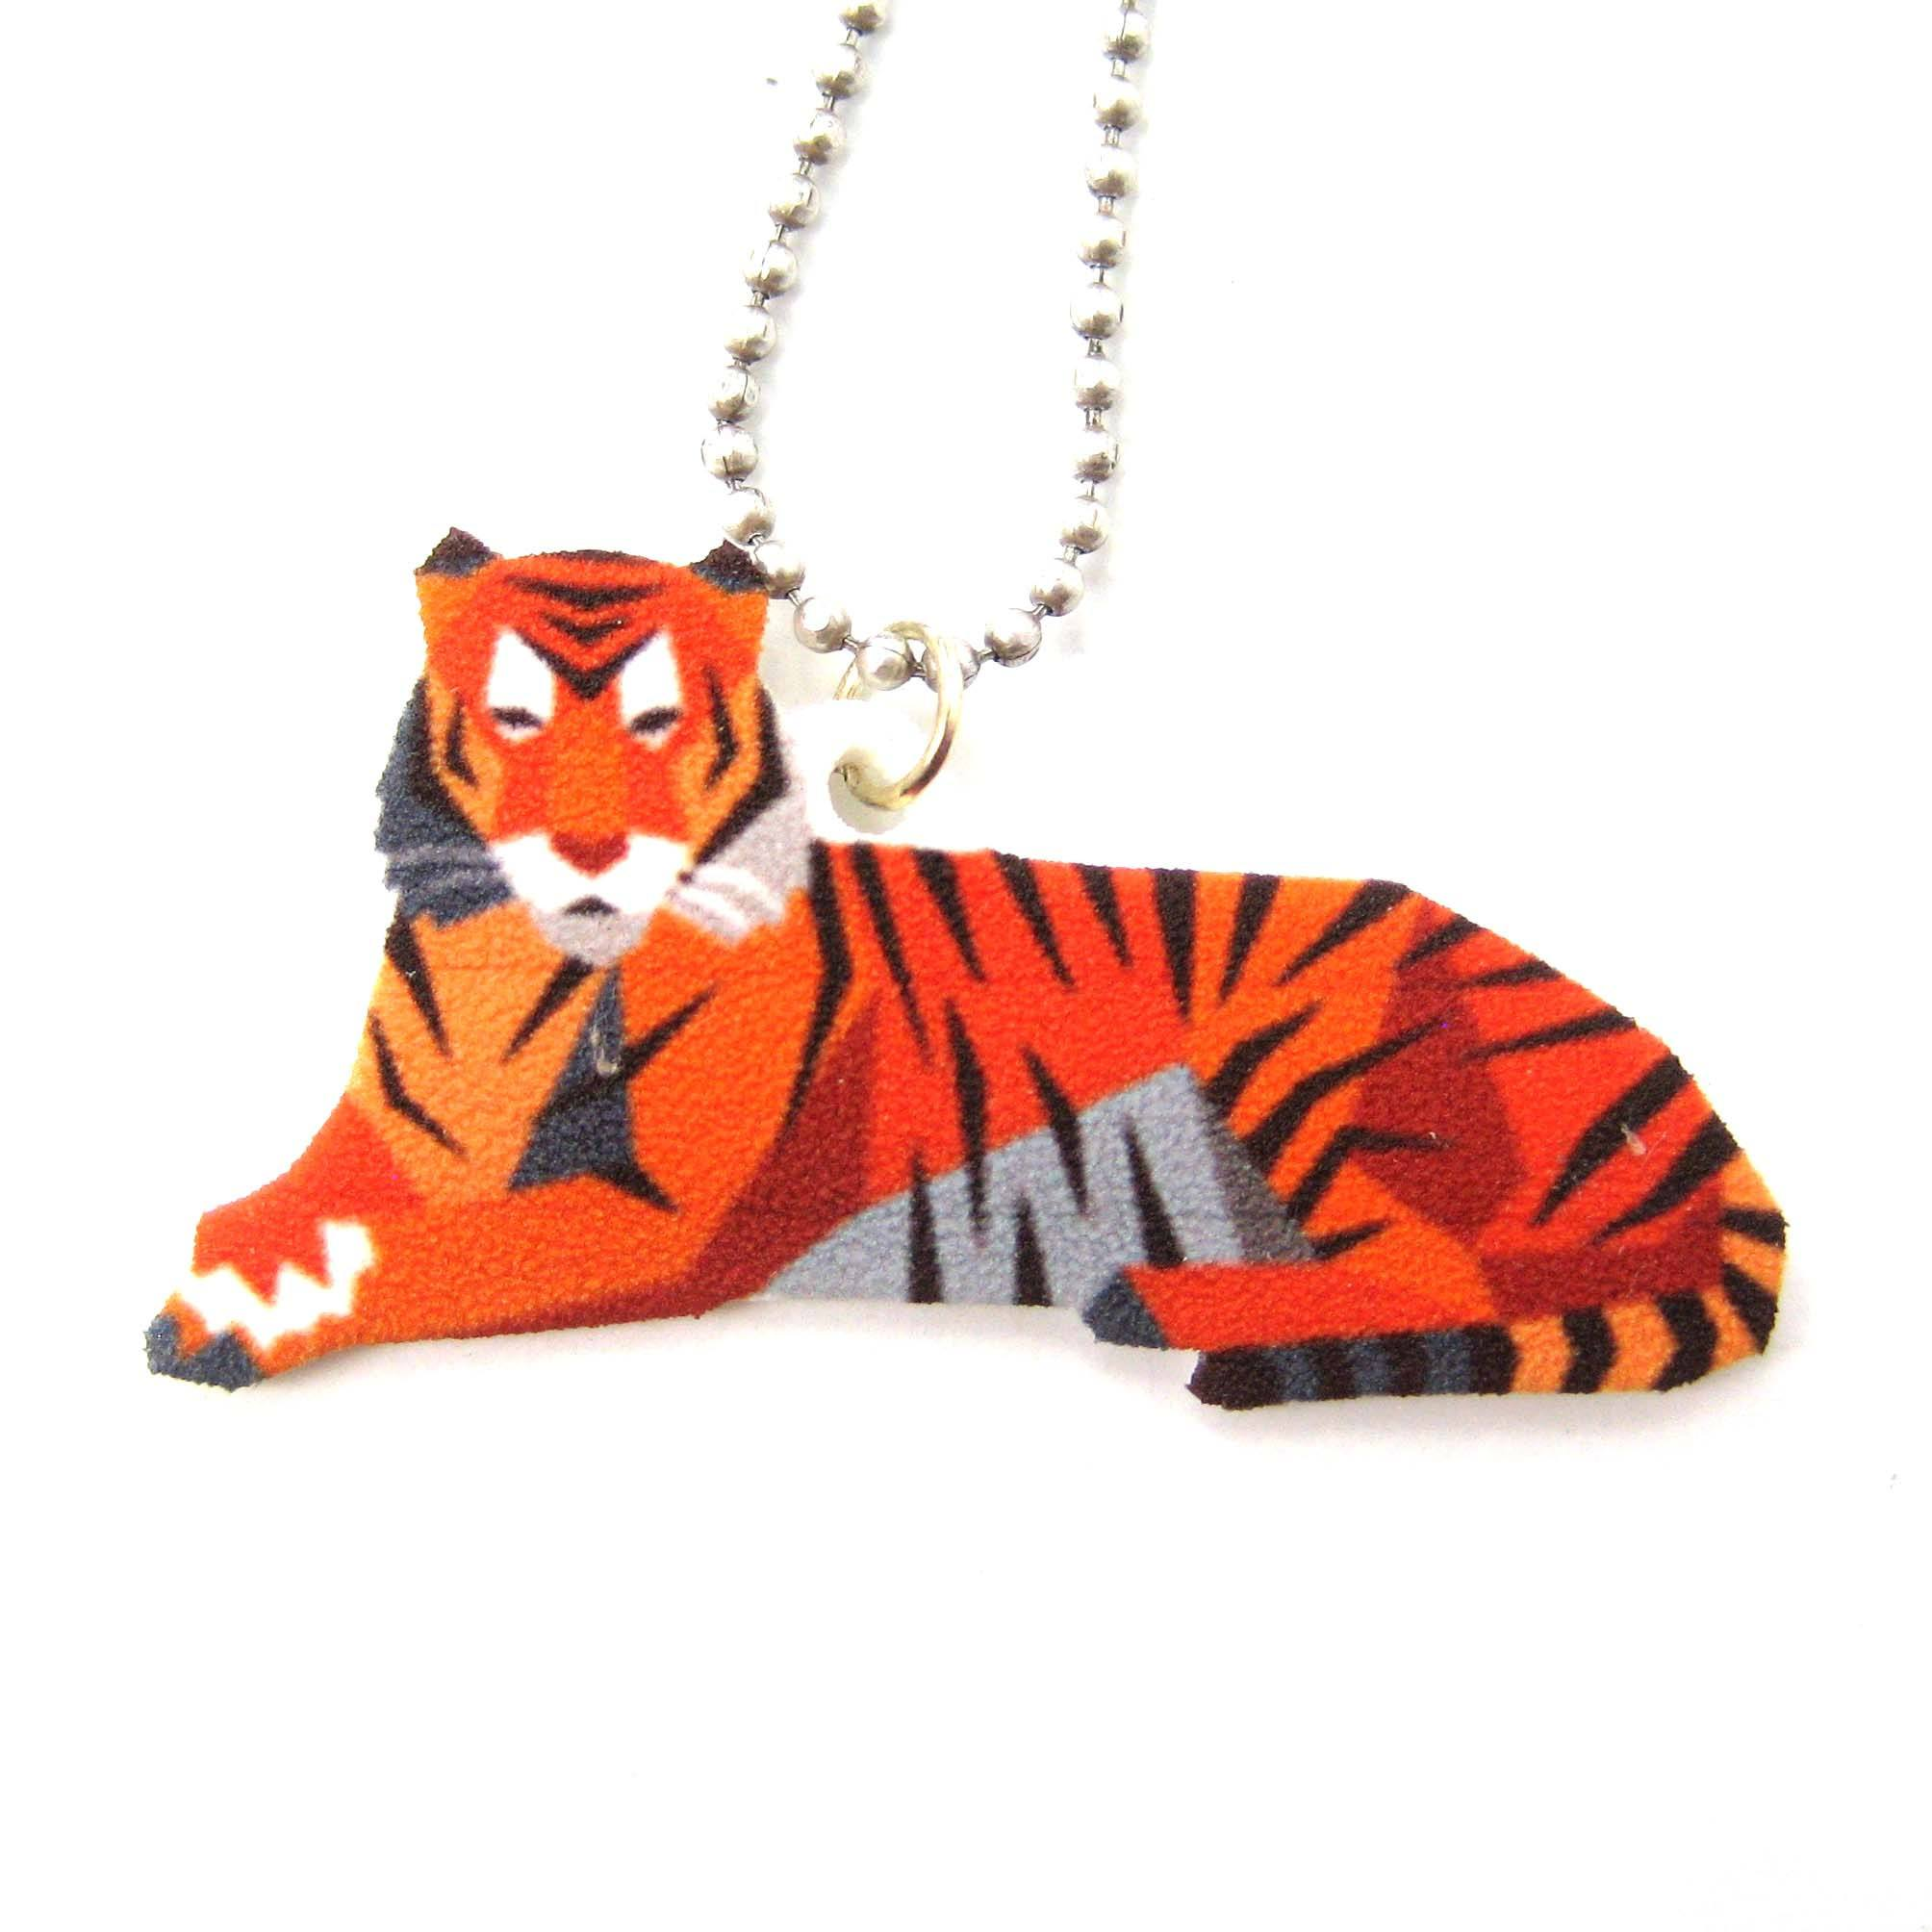 tiger-illustrated-animal-themed-pendant-necklace-handmade-shrink-plastic